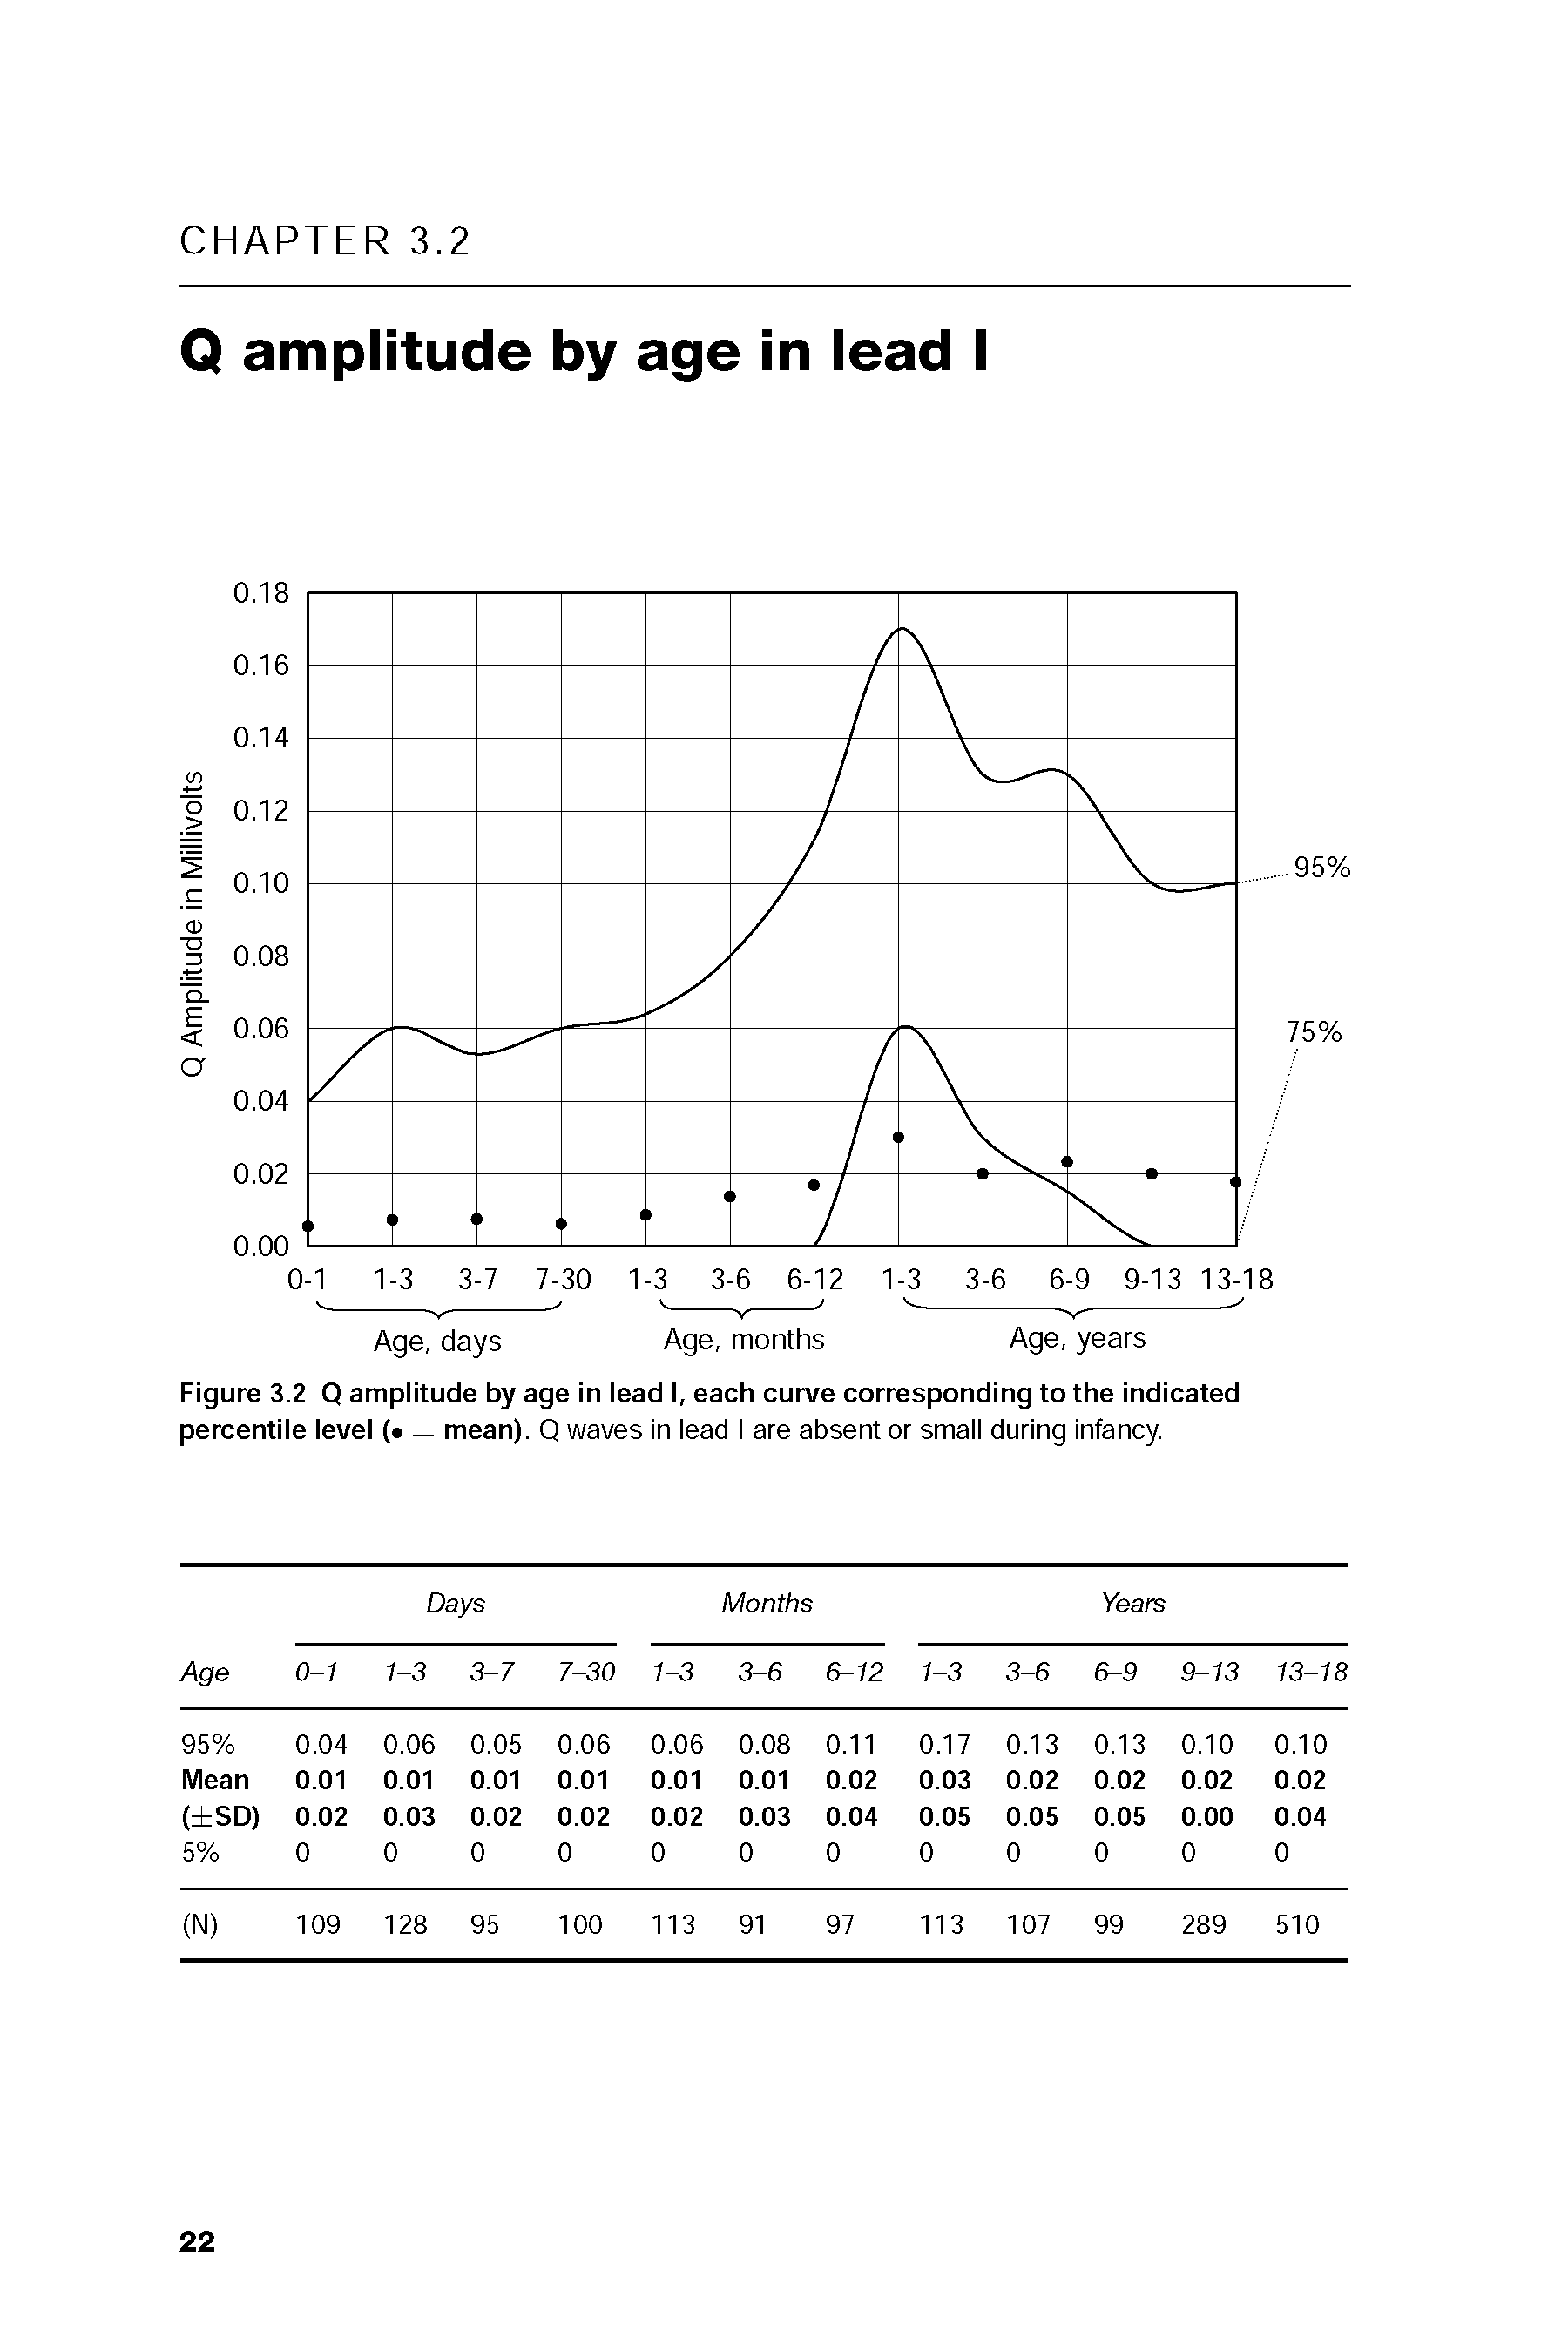 Figure 3.2 Q amplitude by age in lead I, each curve corresponding to the indicated percentile level ( = mean). Q waves in lead I are absent or small during Infancy.